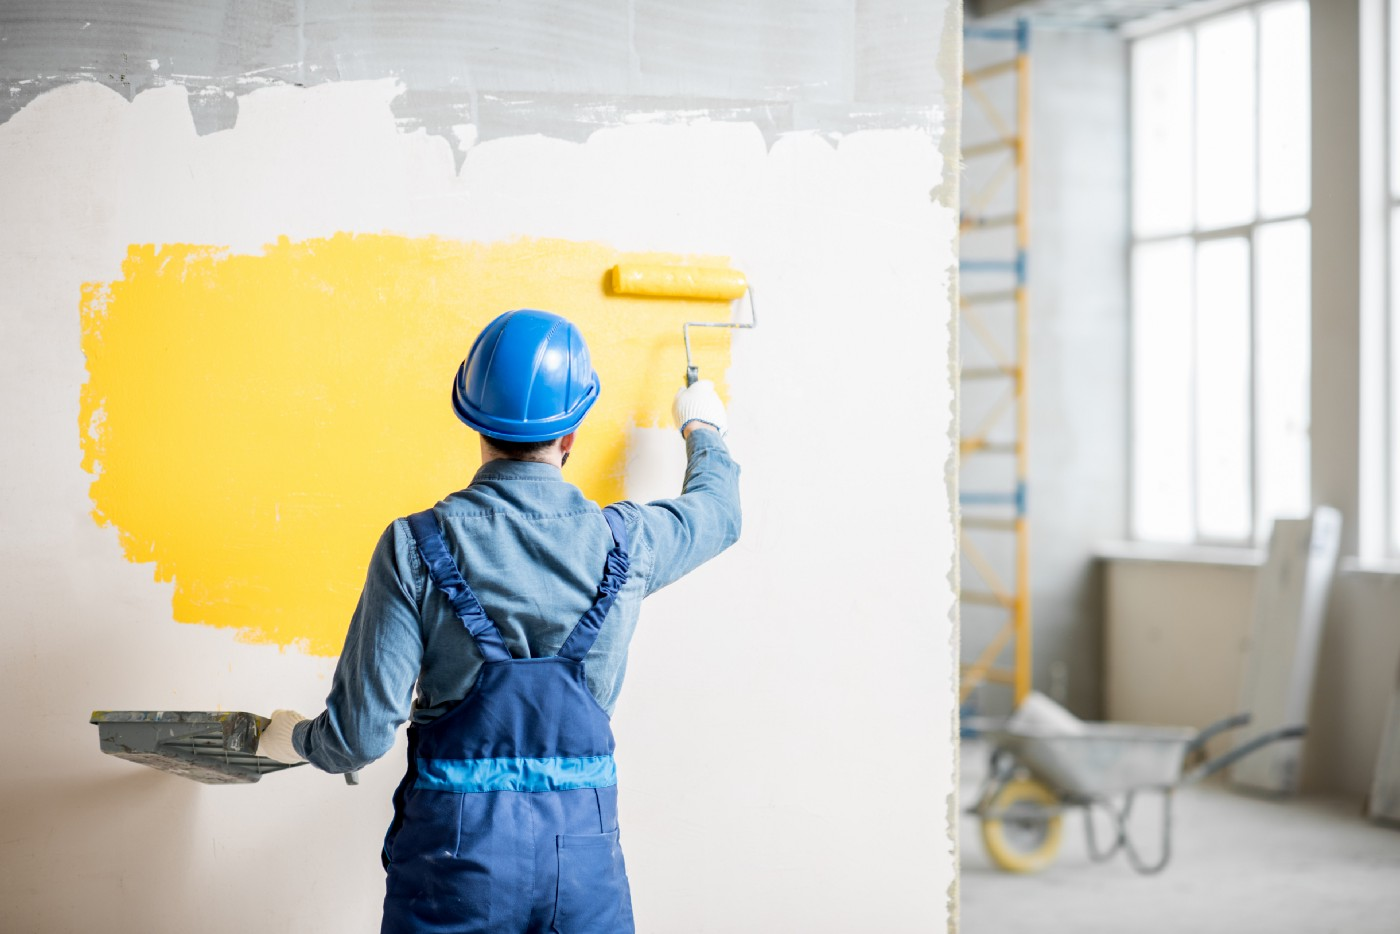 A workperson is painting yellow over a white wall with ragged gray coloring at the top.